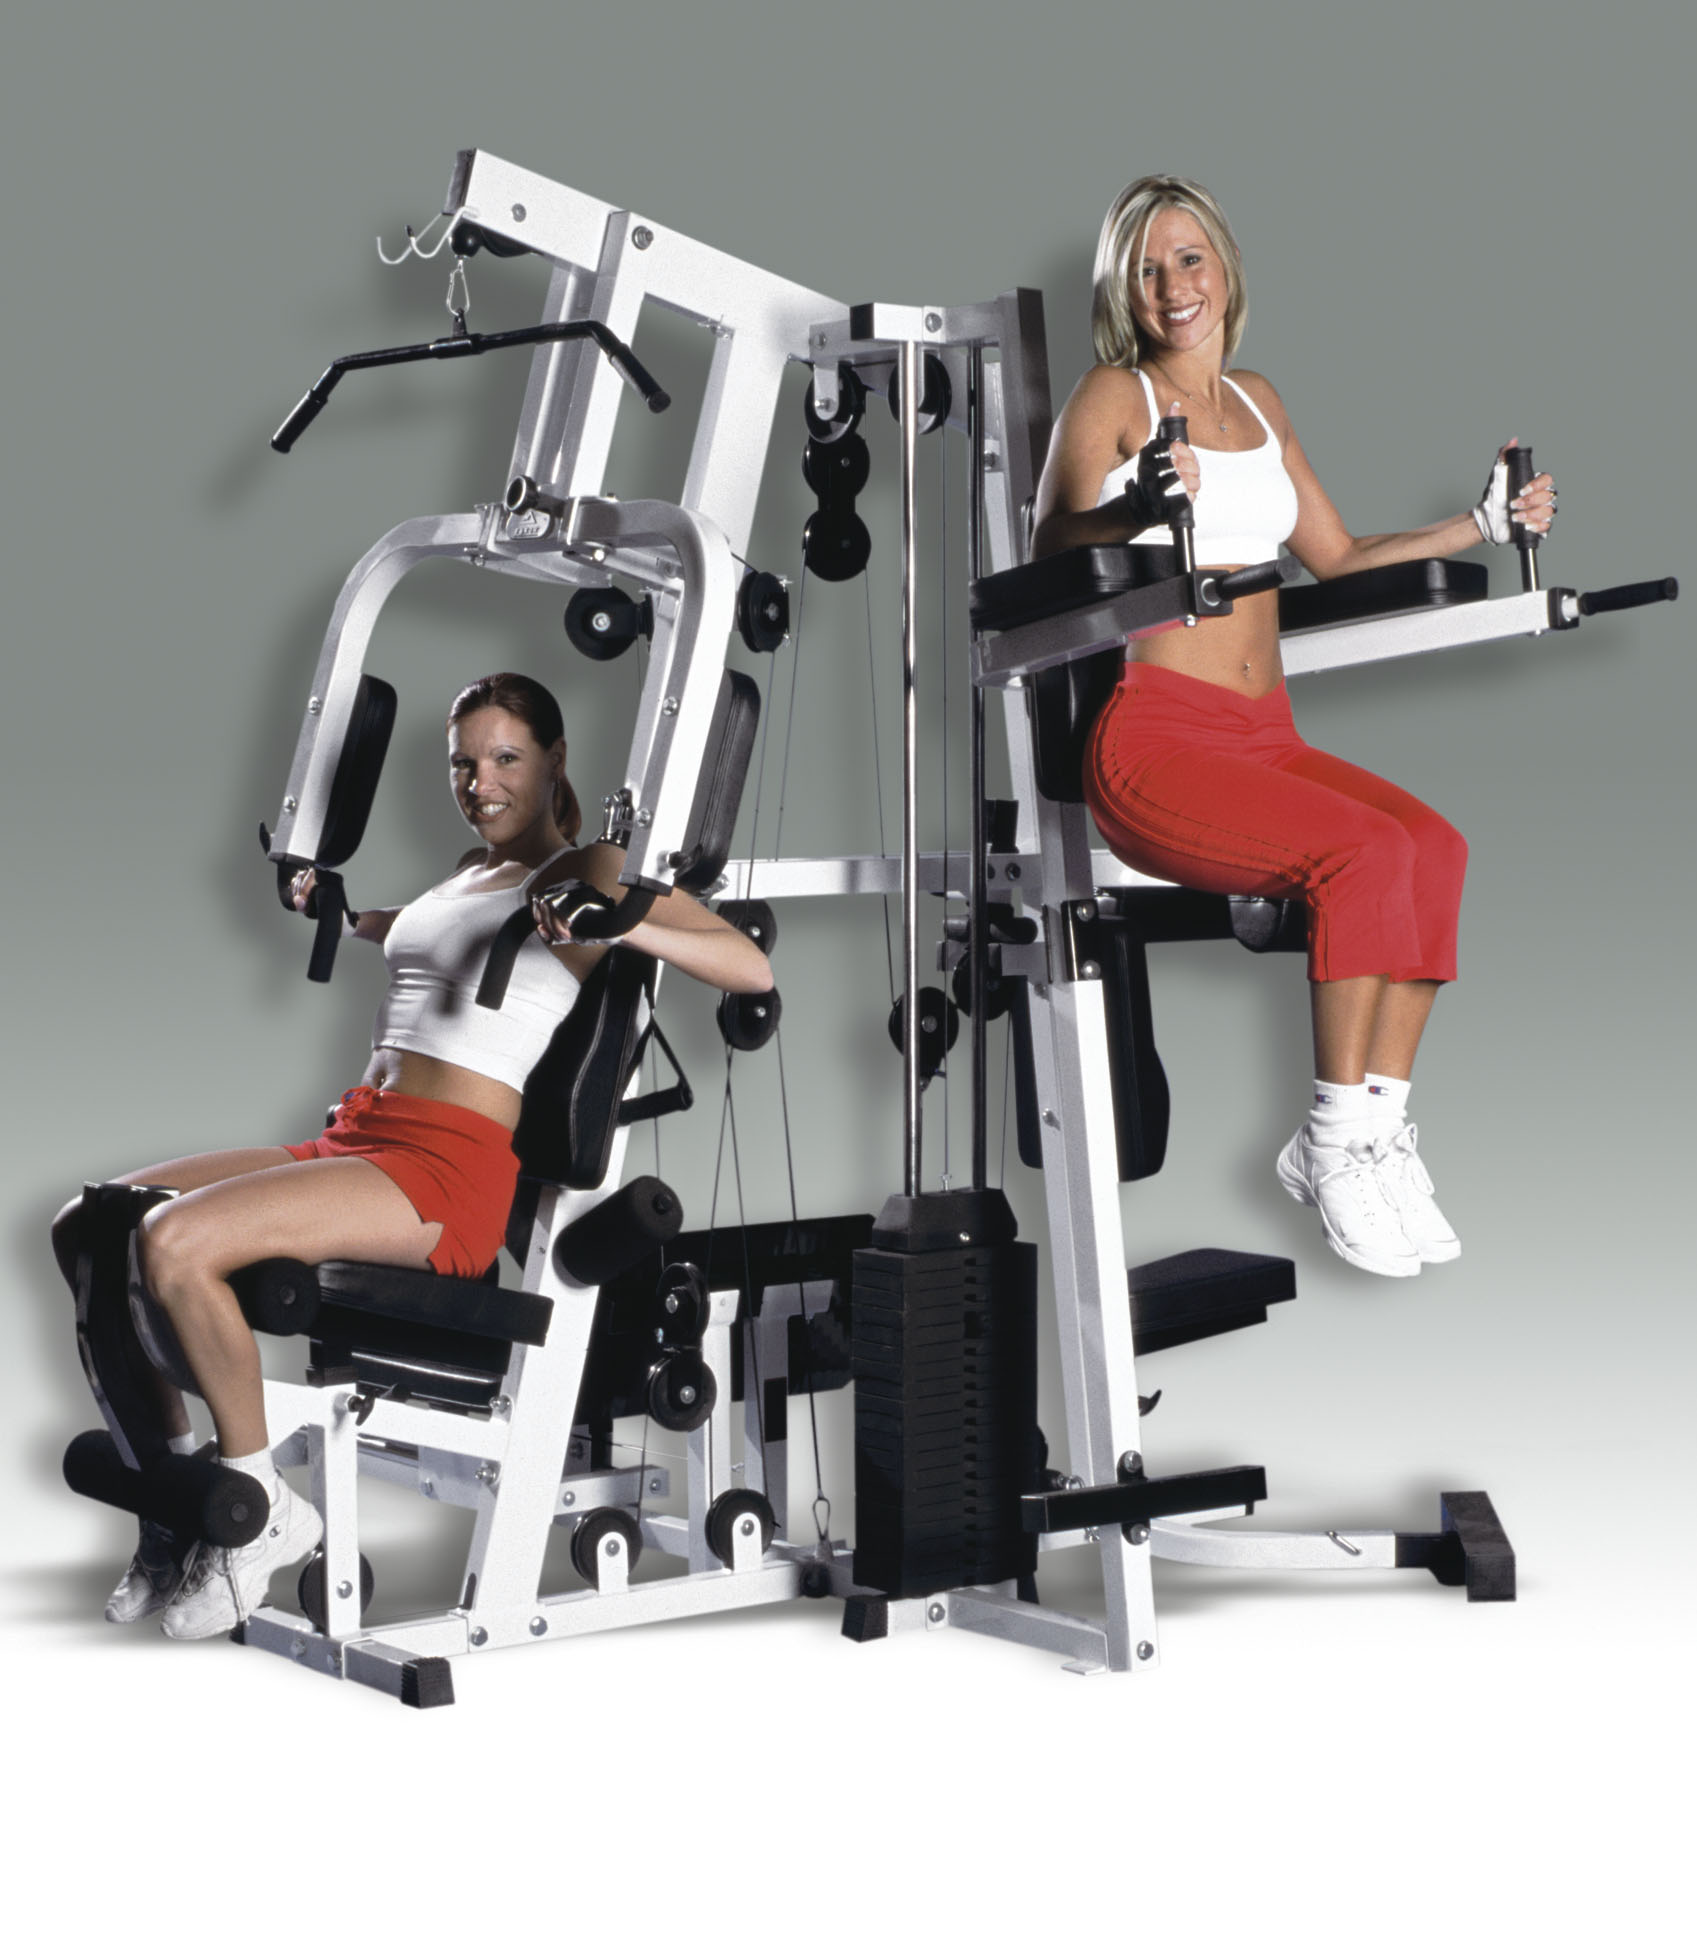 Home gym equipment in petaluma ca exercise